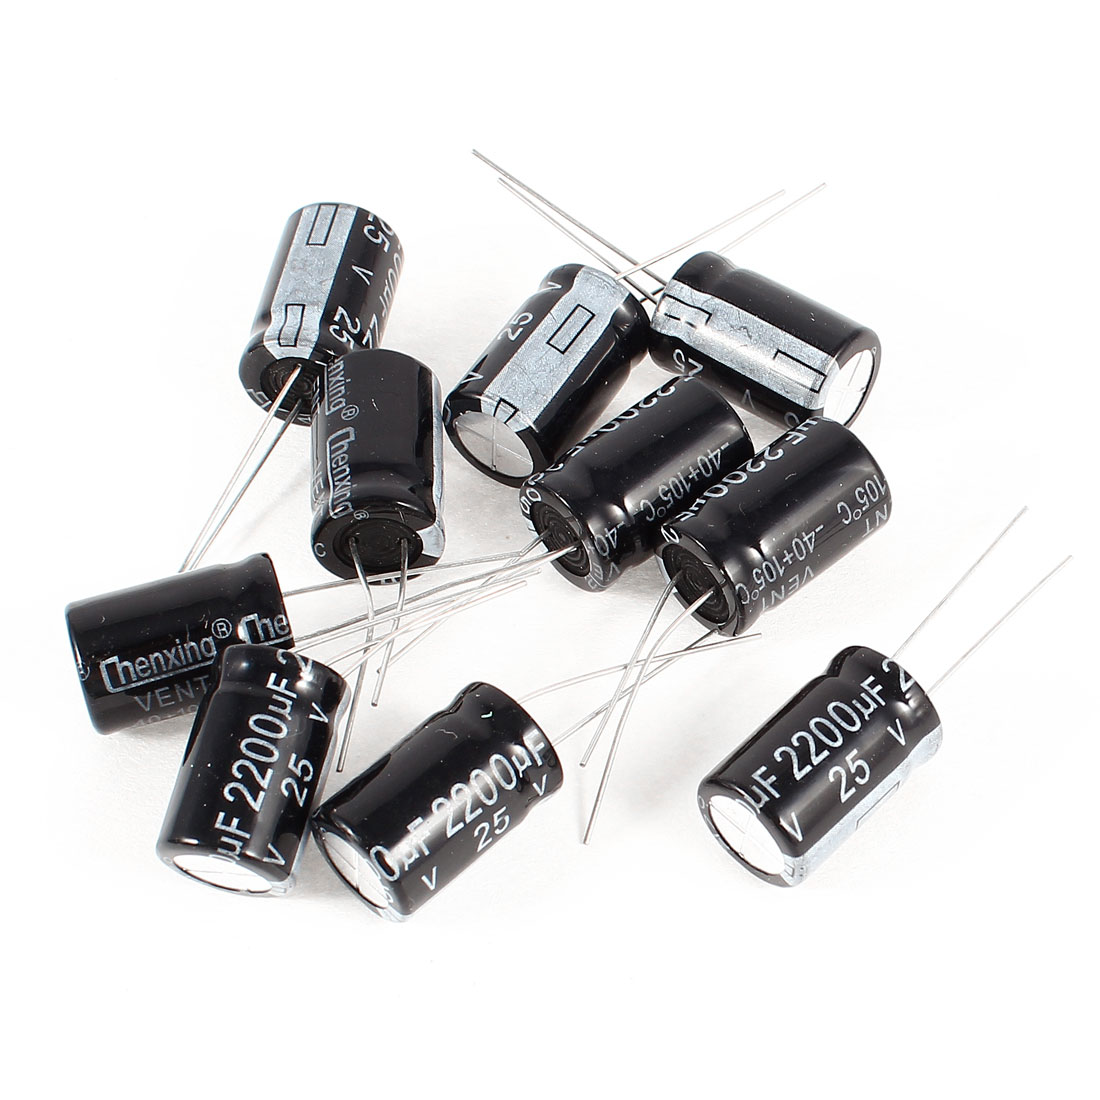 10 Pcs 2200uF 25V Radial Leads Aluminum Electrolytic Capacitors 13x20mm